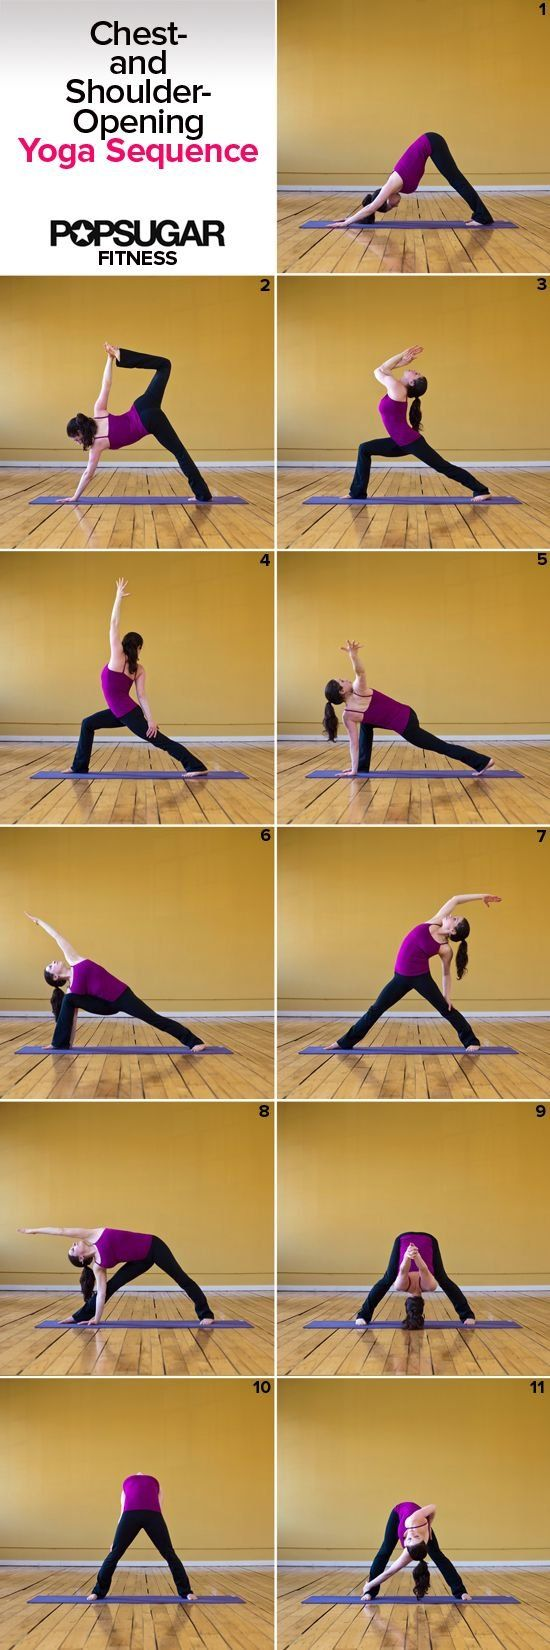 Yoga for insomnia. Highly recommended system of yoga: http://wwwyogafitnessflow.blogspot.com/